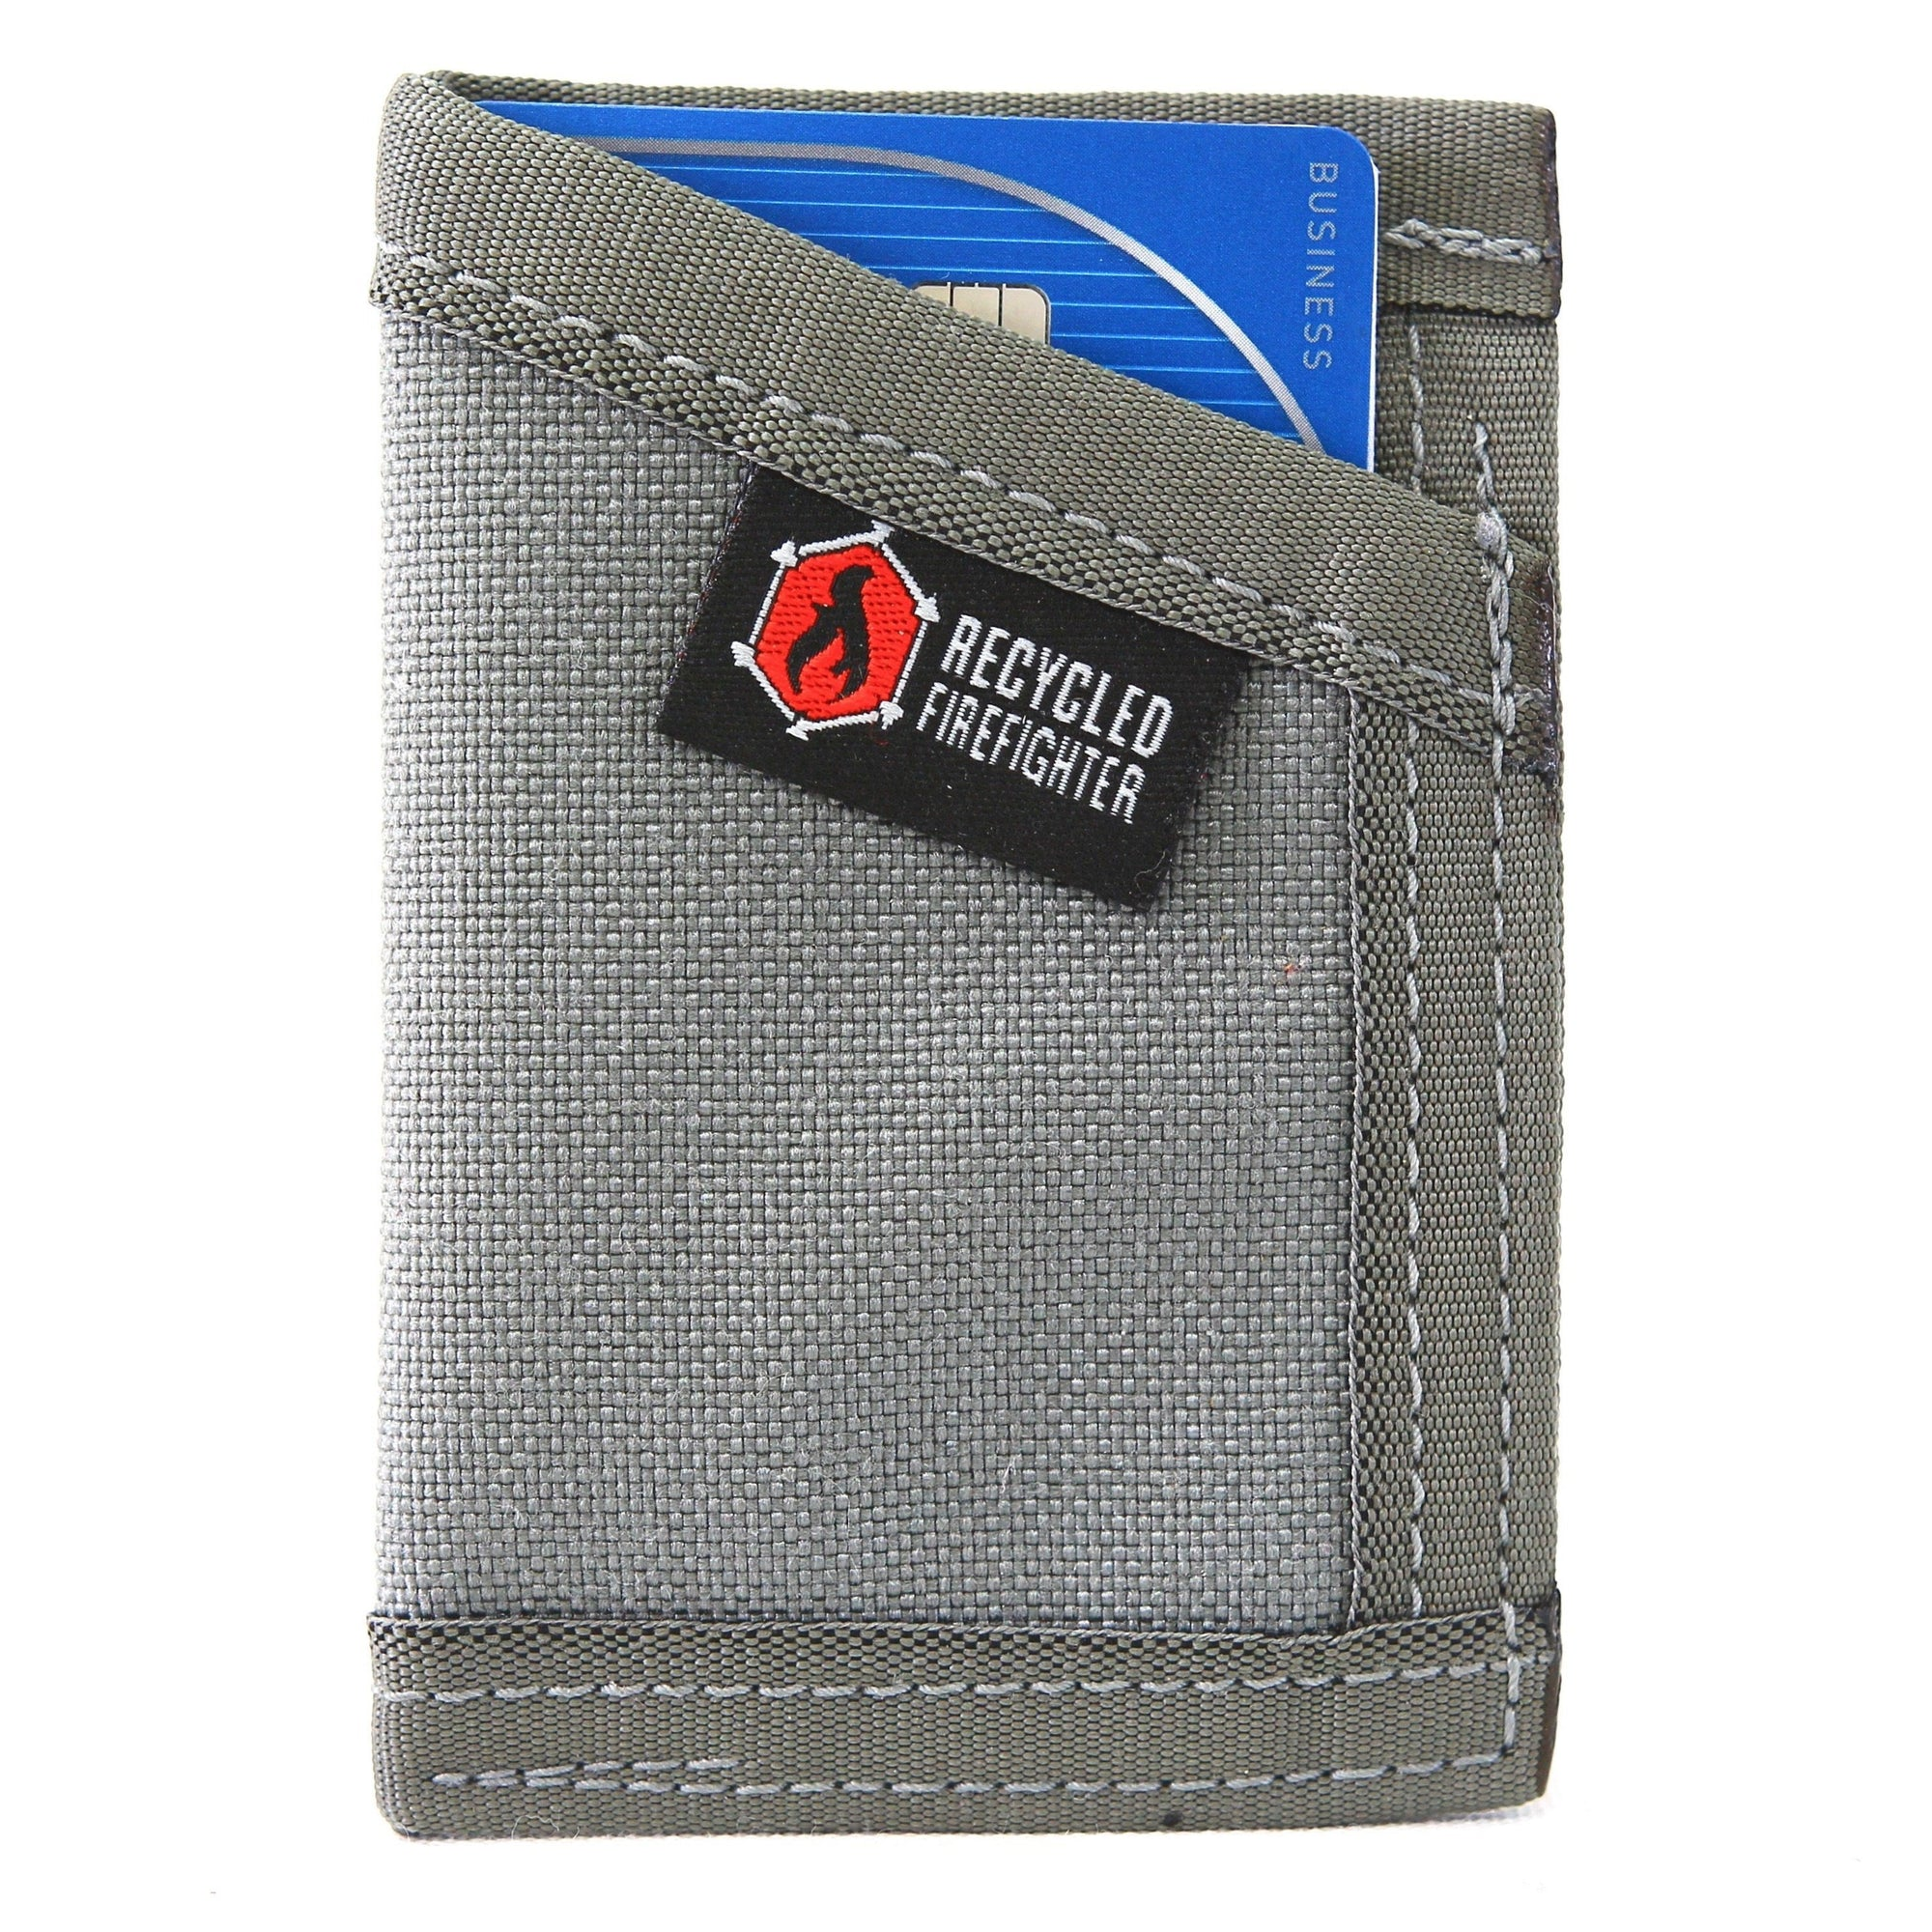 472d44ad0668 1000D NYLON Credit Card Minimalist Wallet by Recycled Firefighter